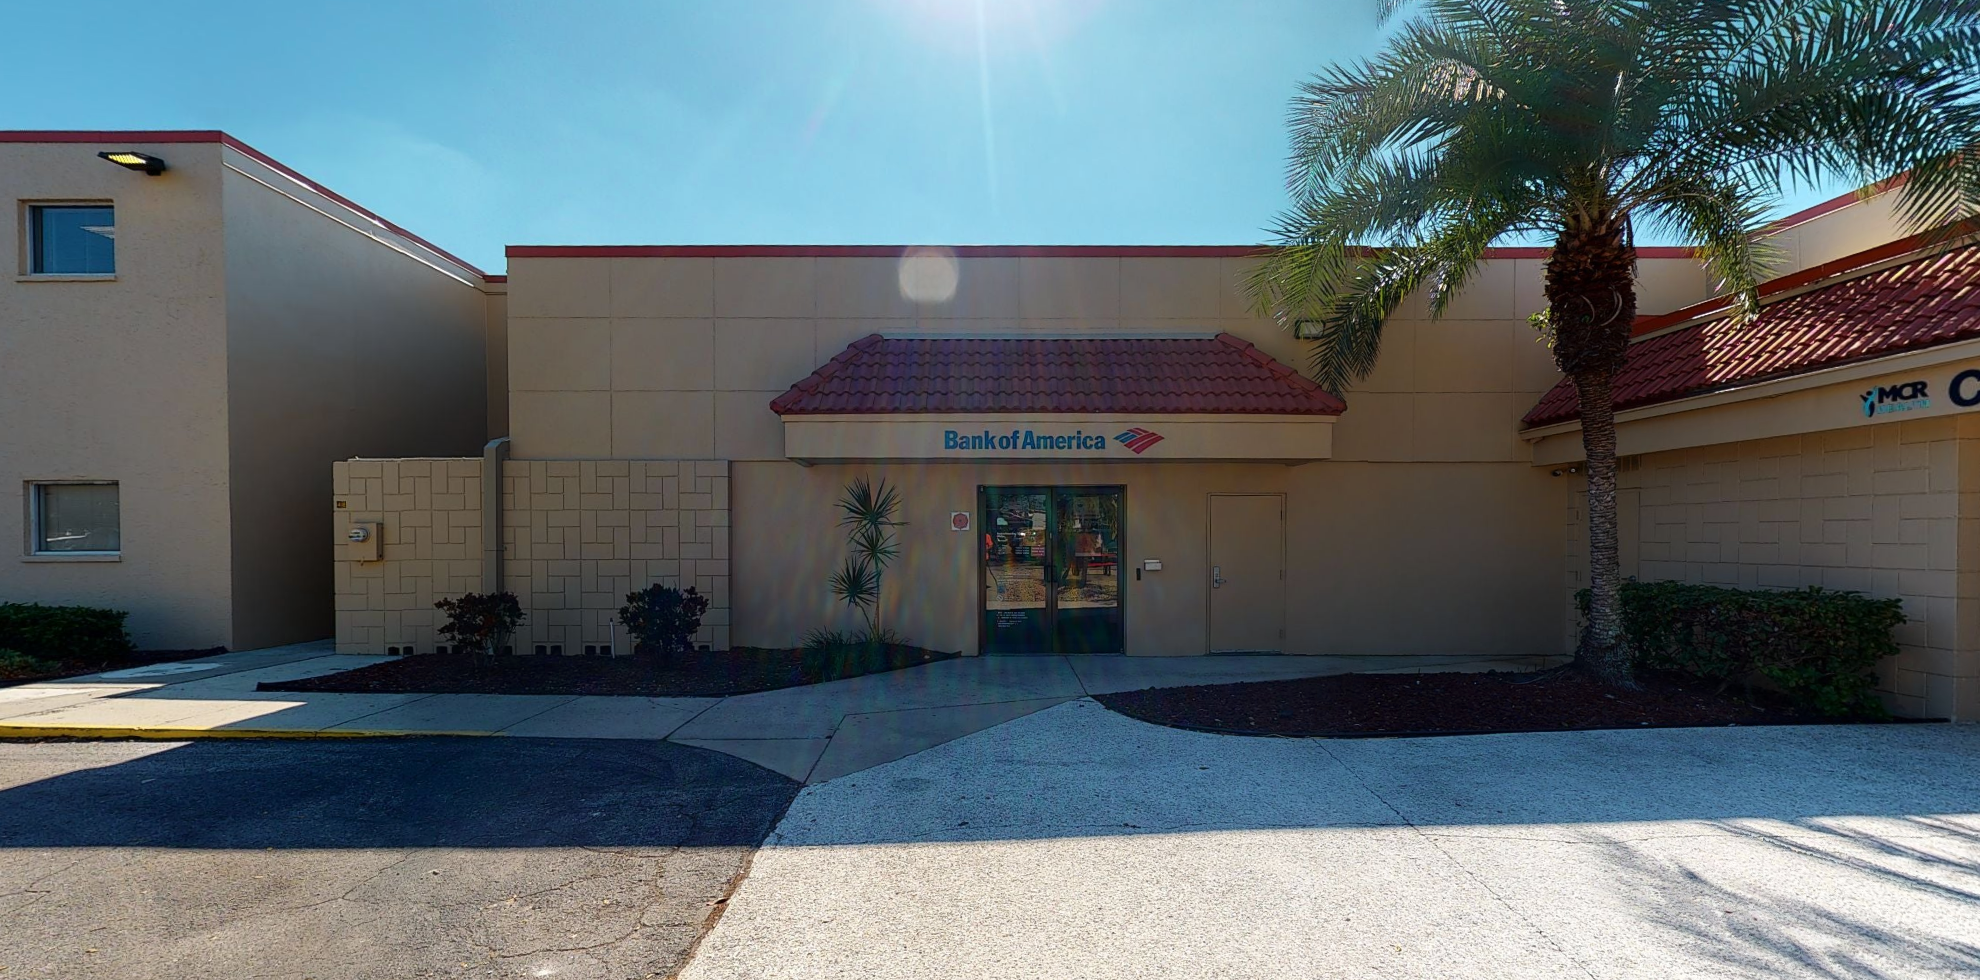 Bank of America financial center with drive-thru ATM   700 8th Ave W, Palmetto, FL 34221